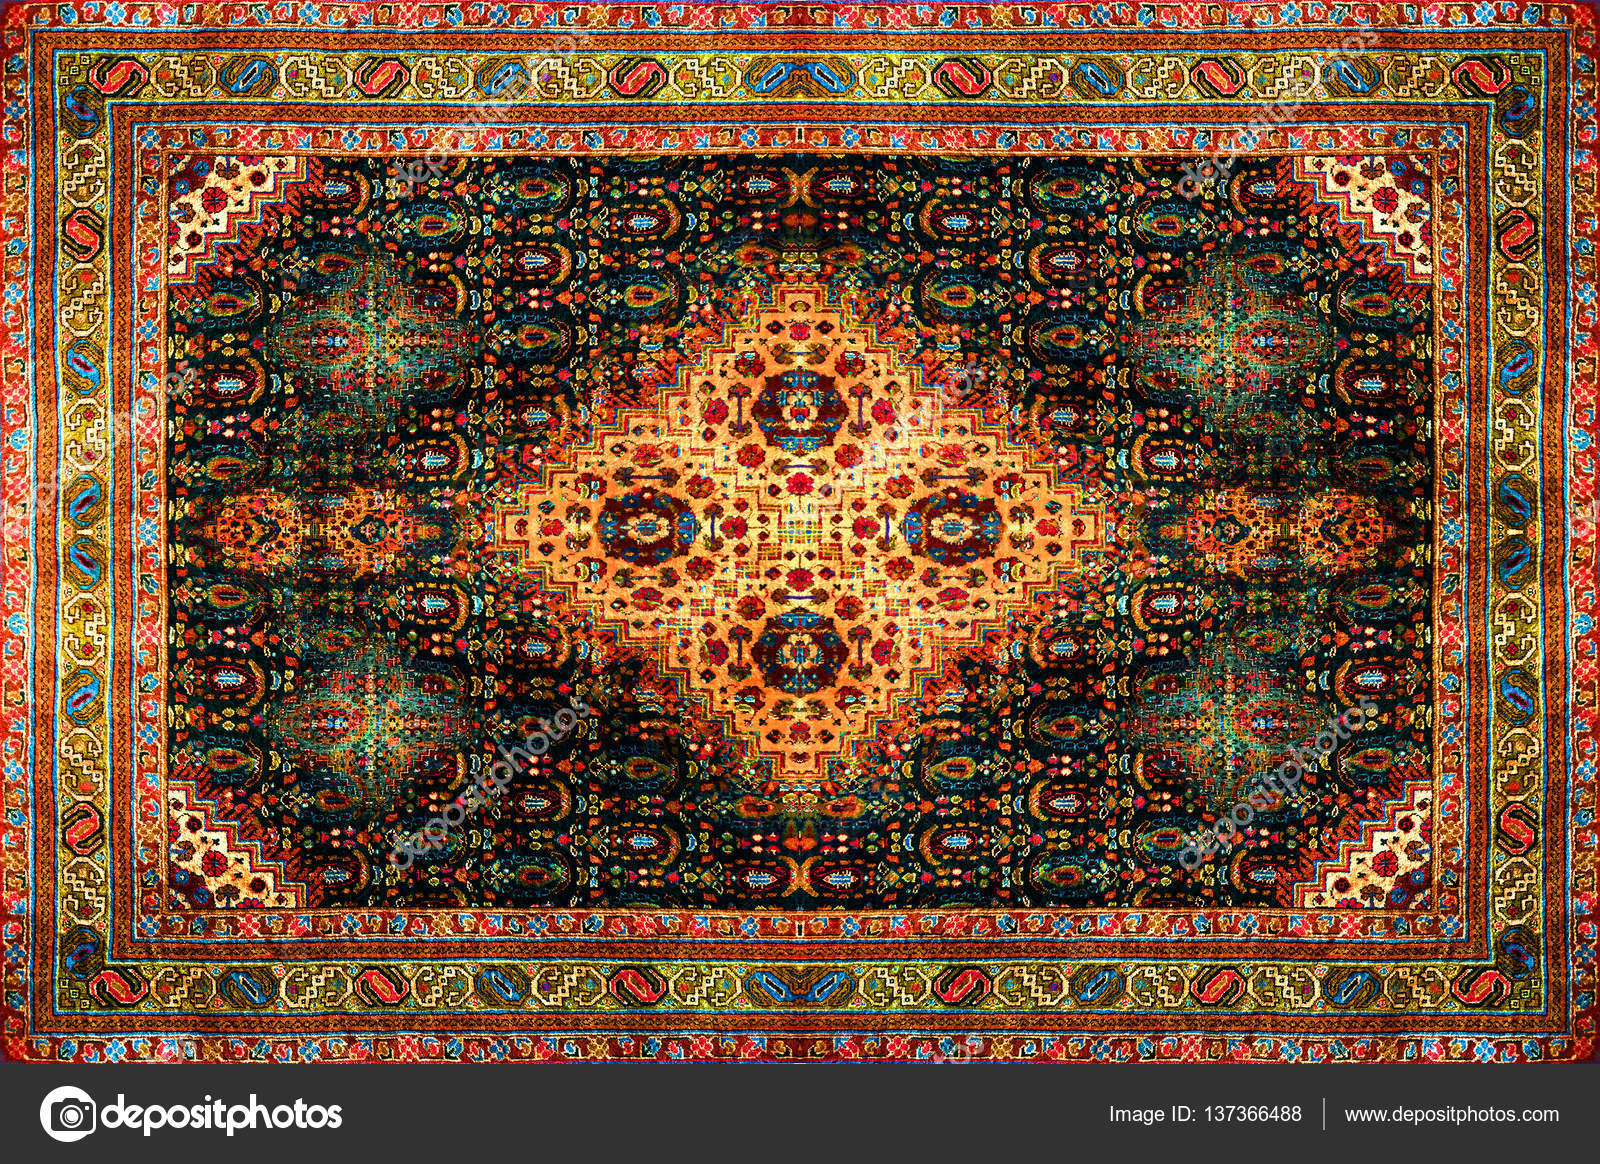 Abstract Arab Arabic Art Background Beautiful Brown Carpet Collection Colorful Decor Decoration Design Ethnic Fabric Floor Flooring Floral